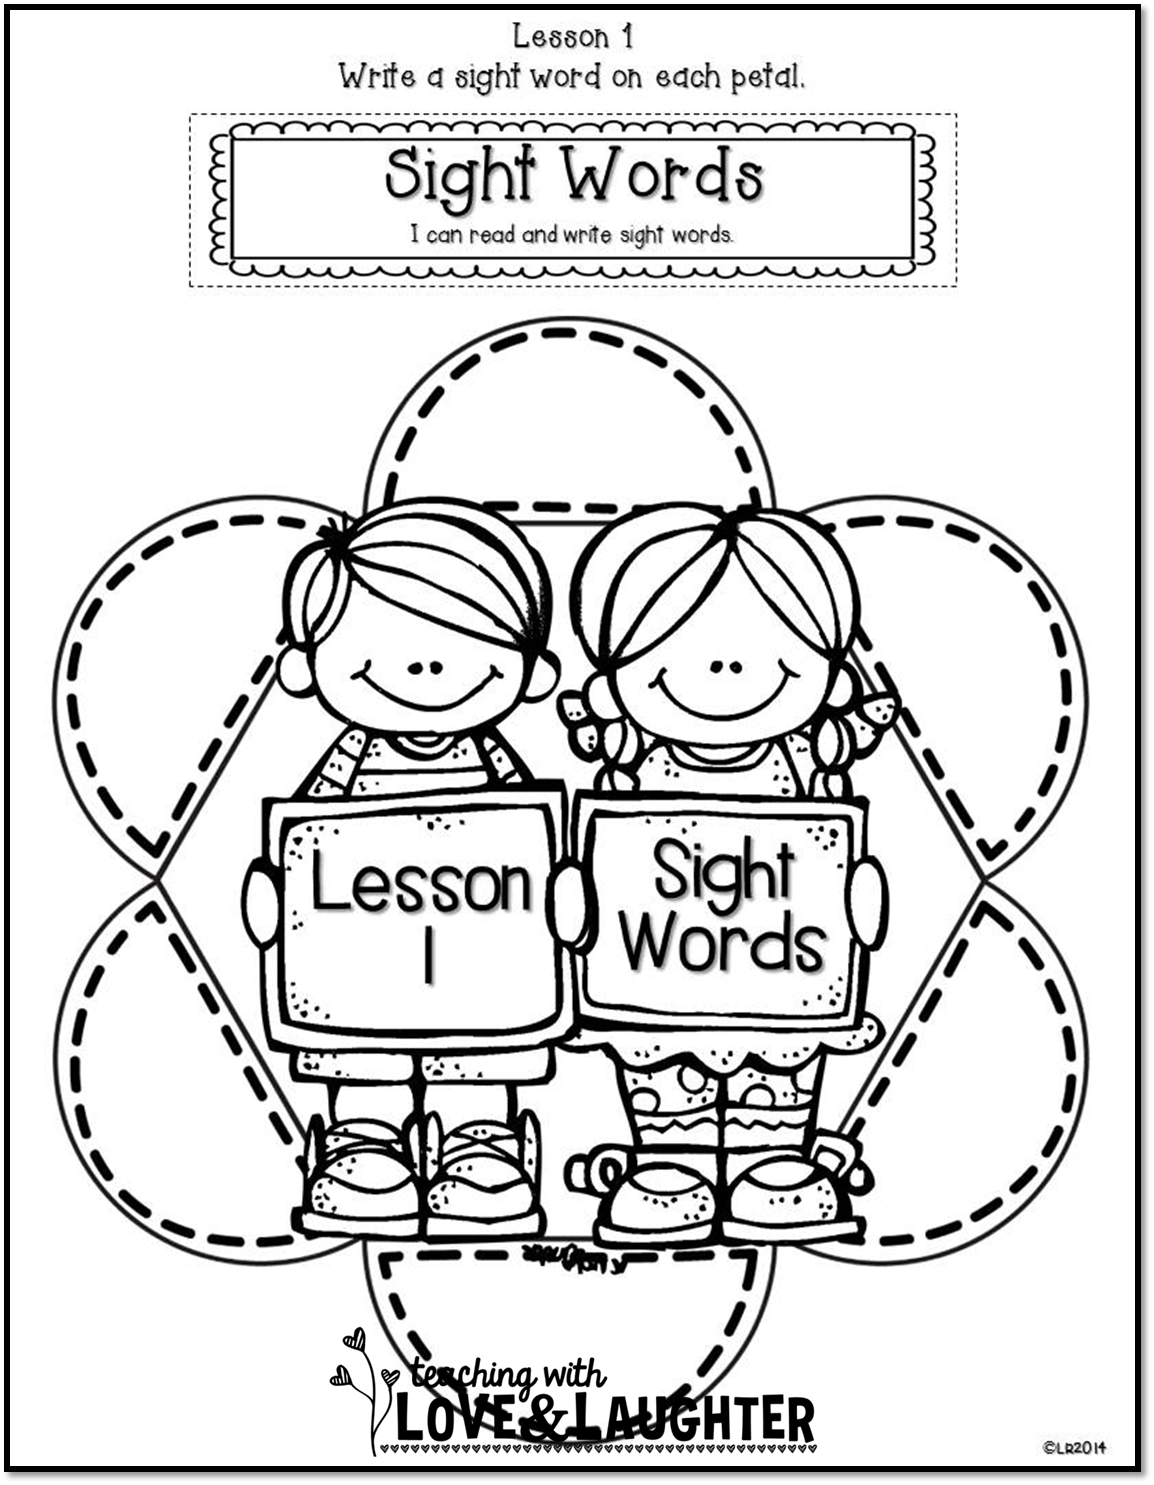 Teaching With Love and Laughter: First Grade Interactive